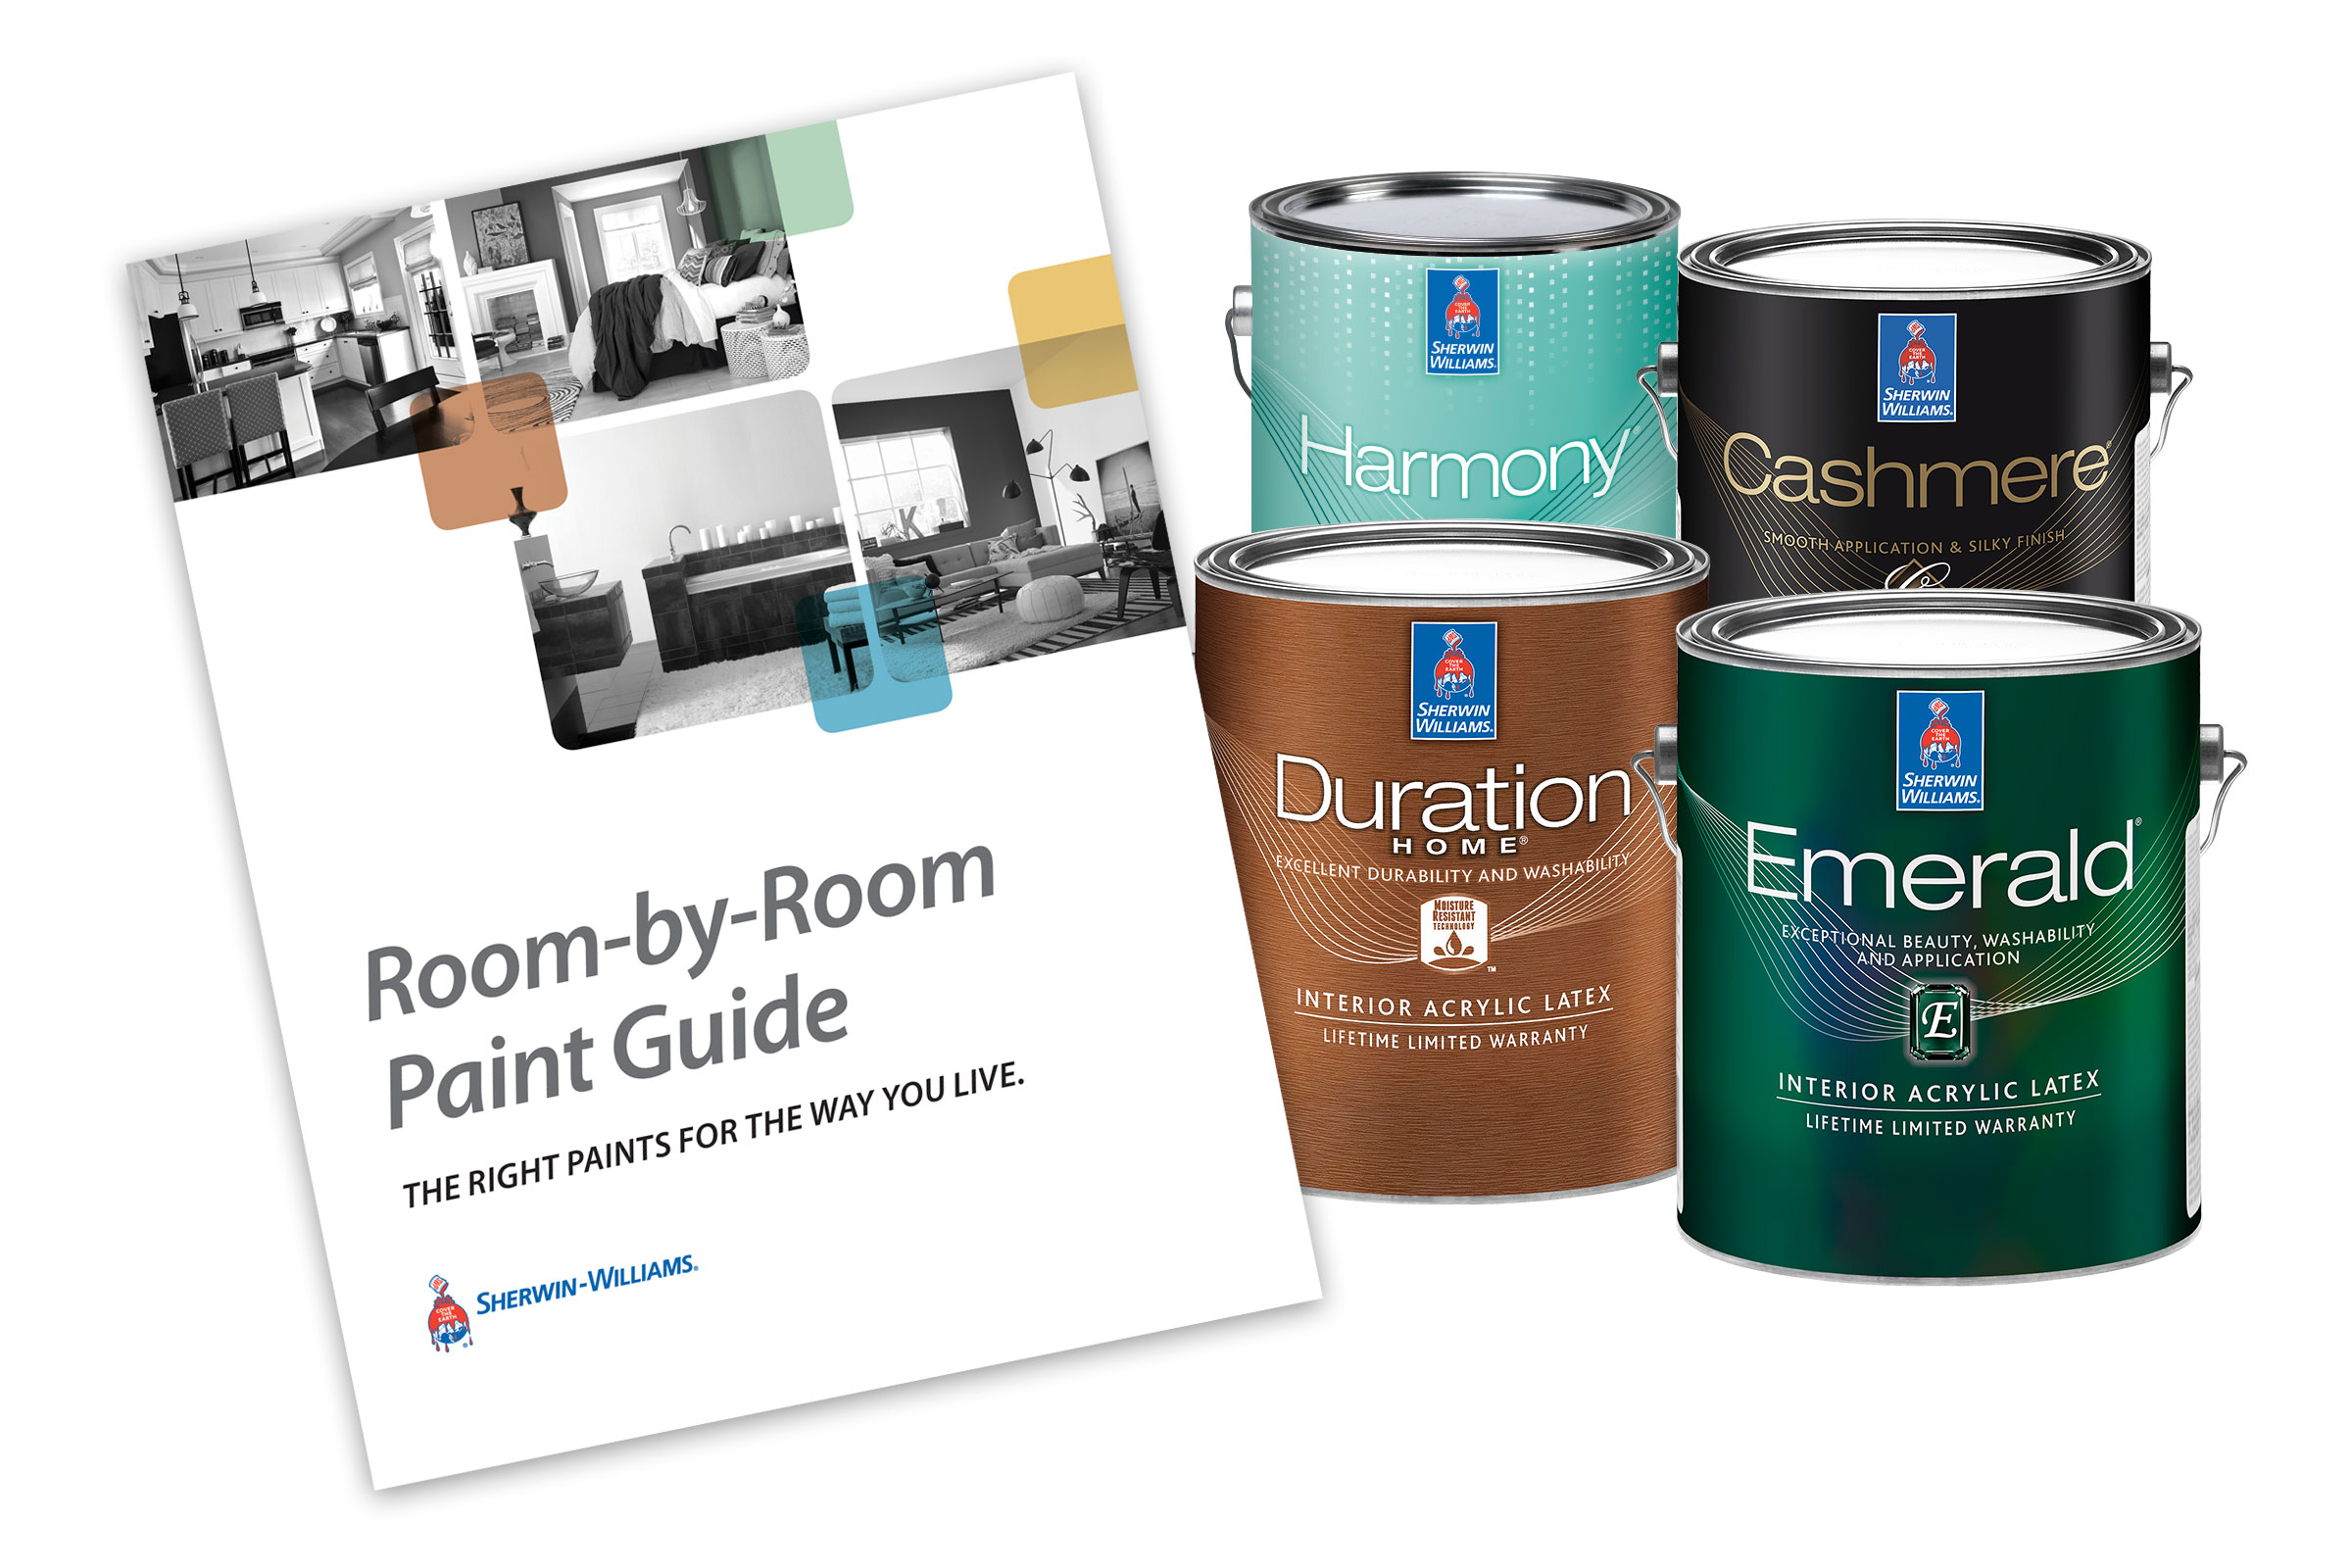 roombyroom brochure cans